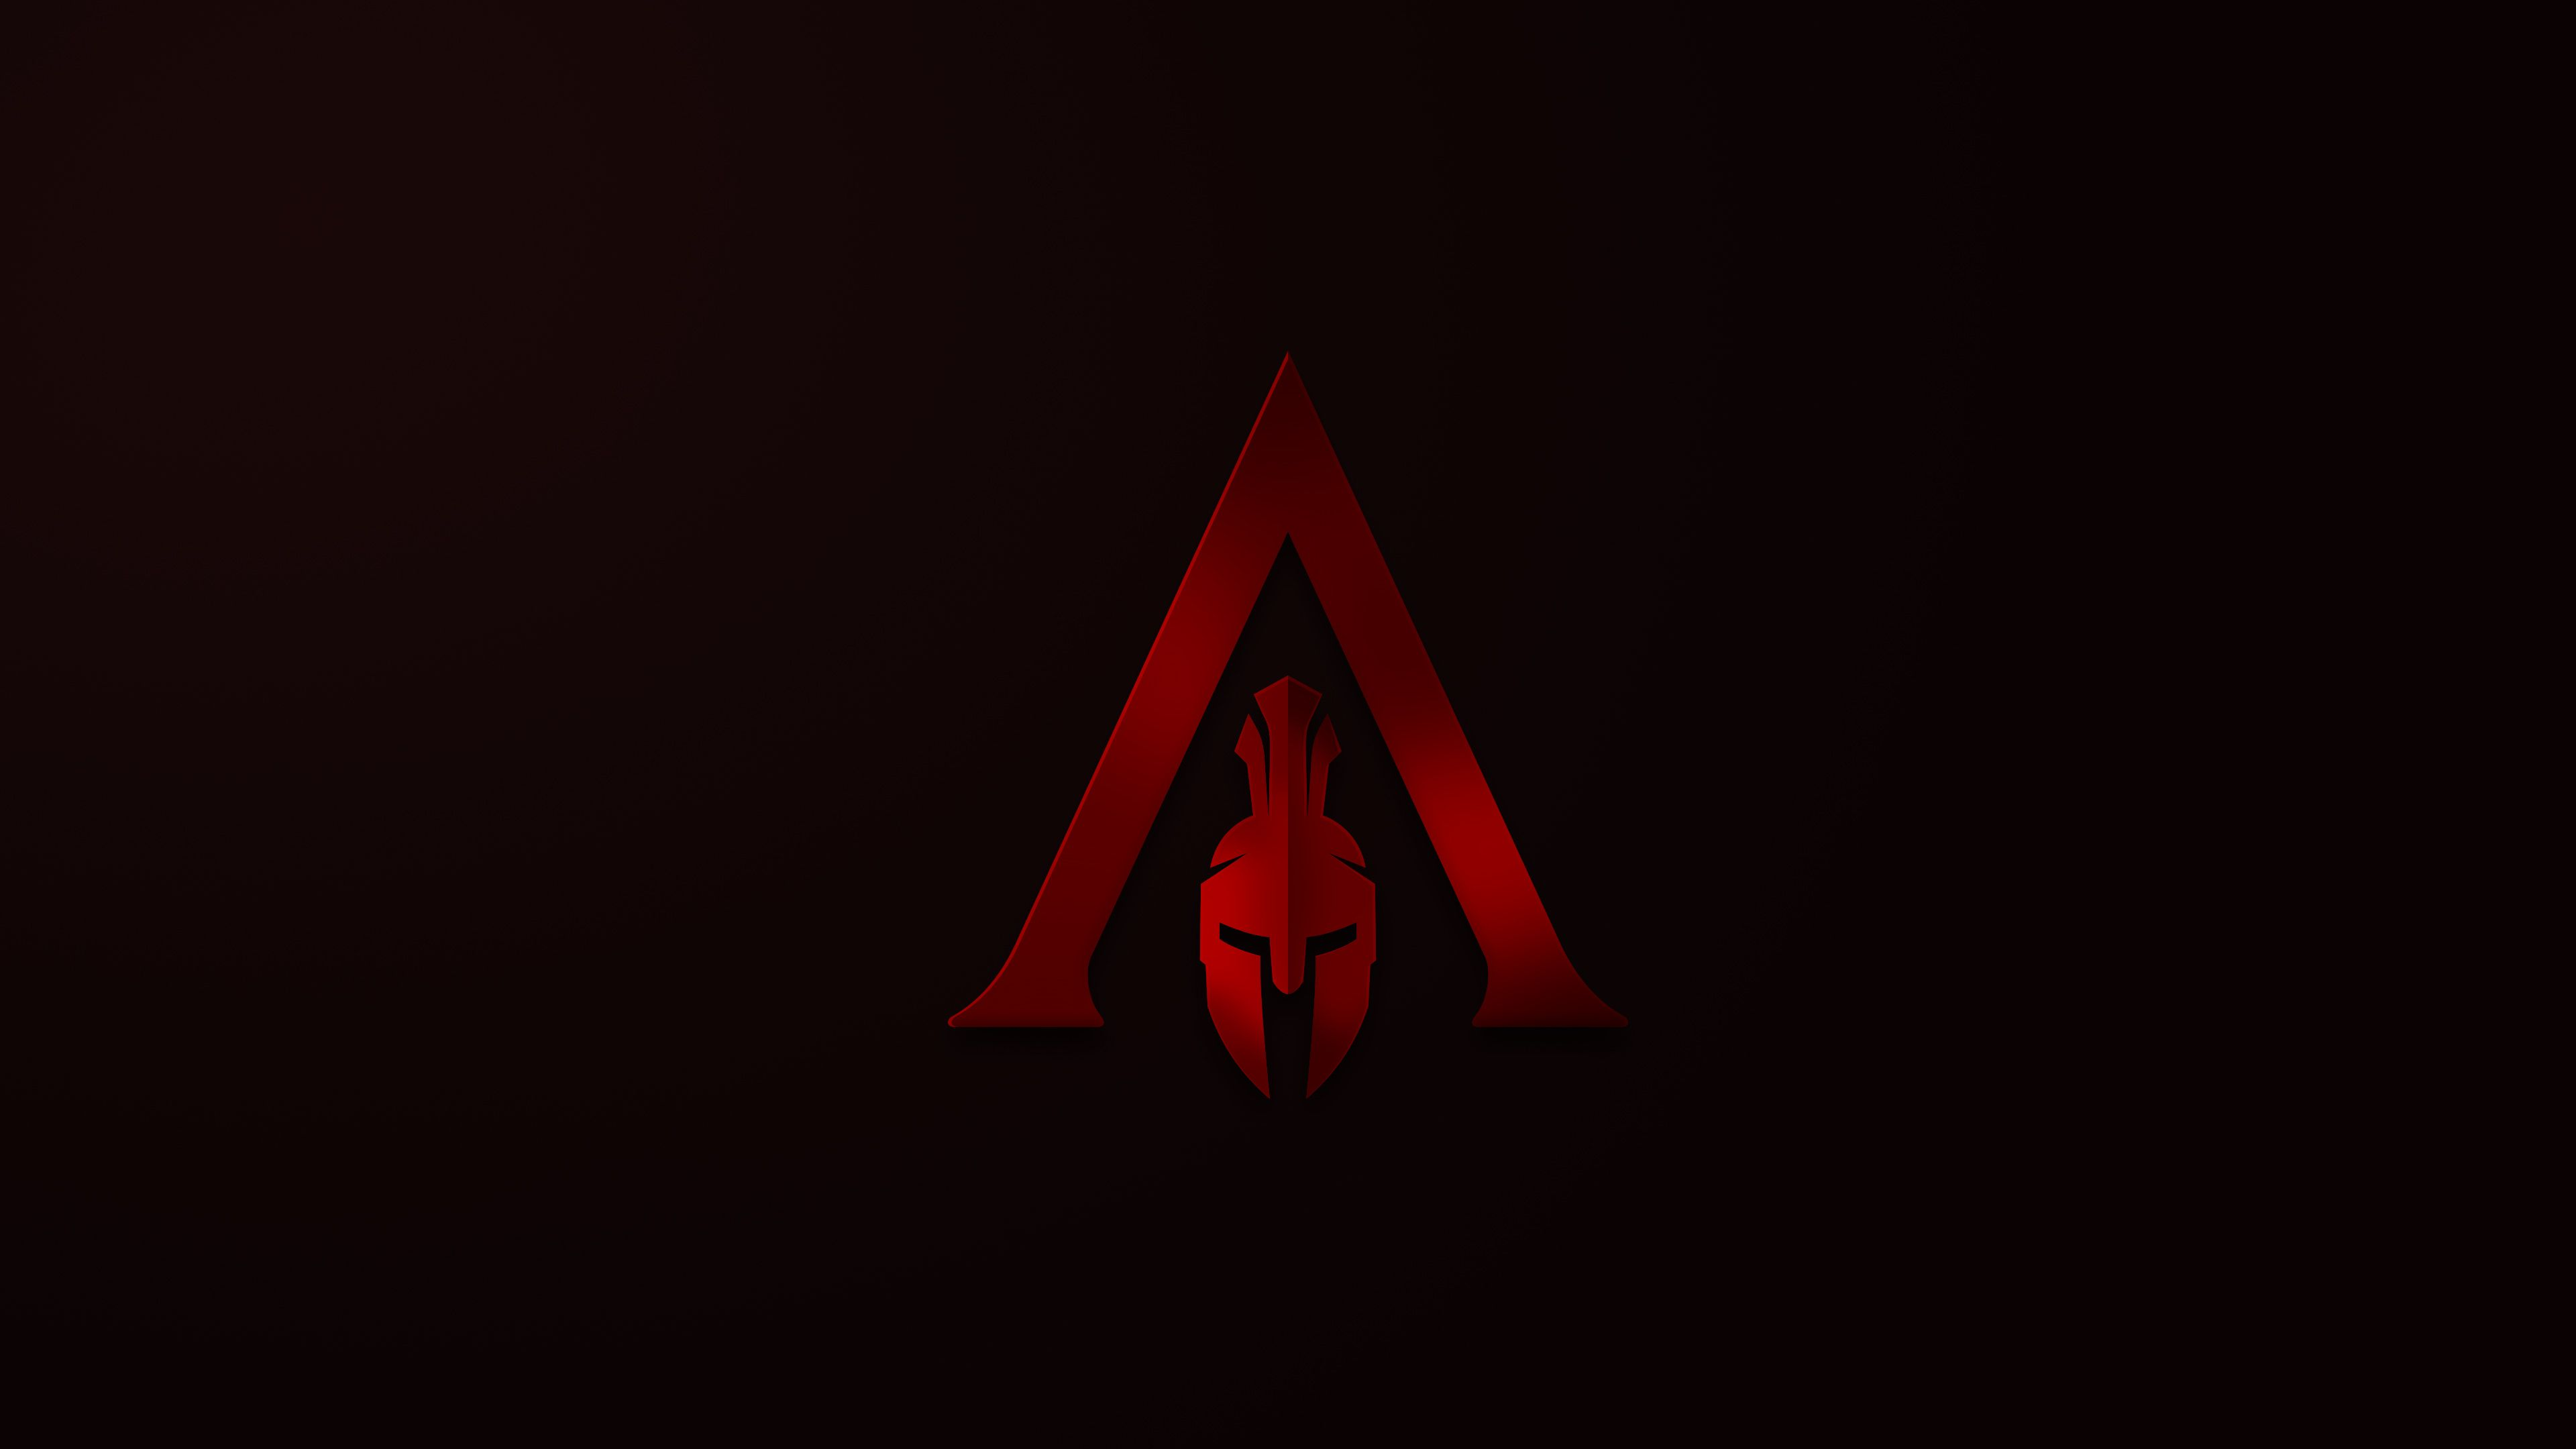 Assassins Creed Odyssey Minimalism Logo 4k Minimalist Wallpapers Minimalism Wallpapers Hd In 2020 Assassin S Creed Wallpaper Assassins Creed Assassins Creed Odyssey